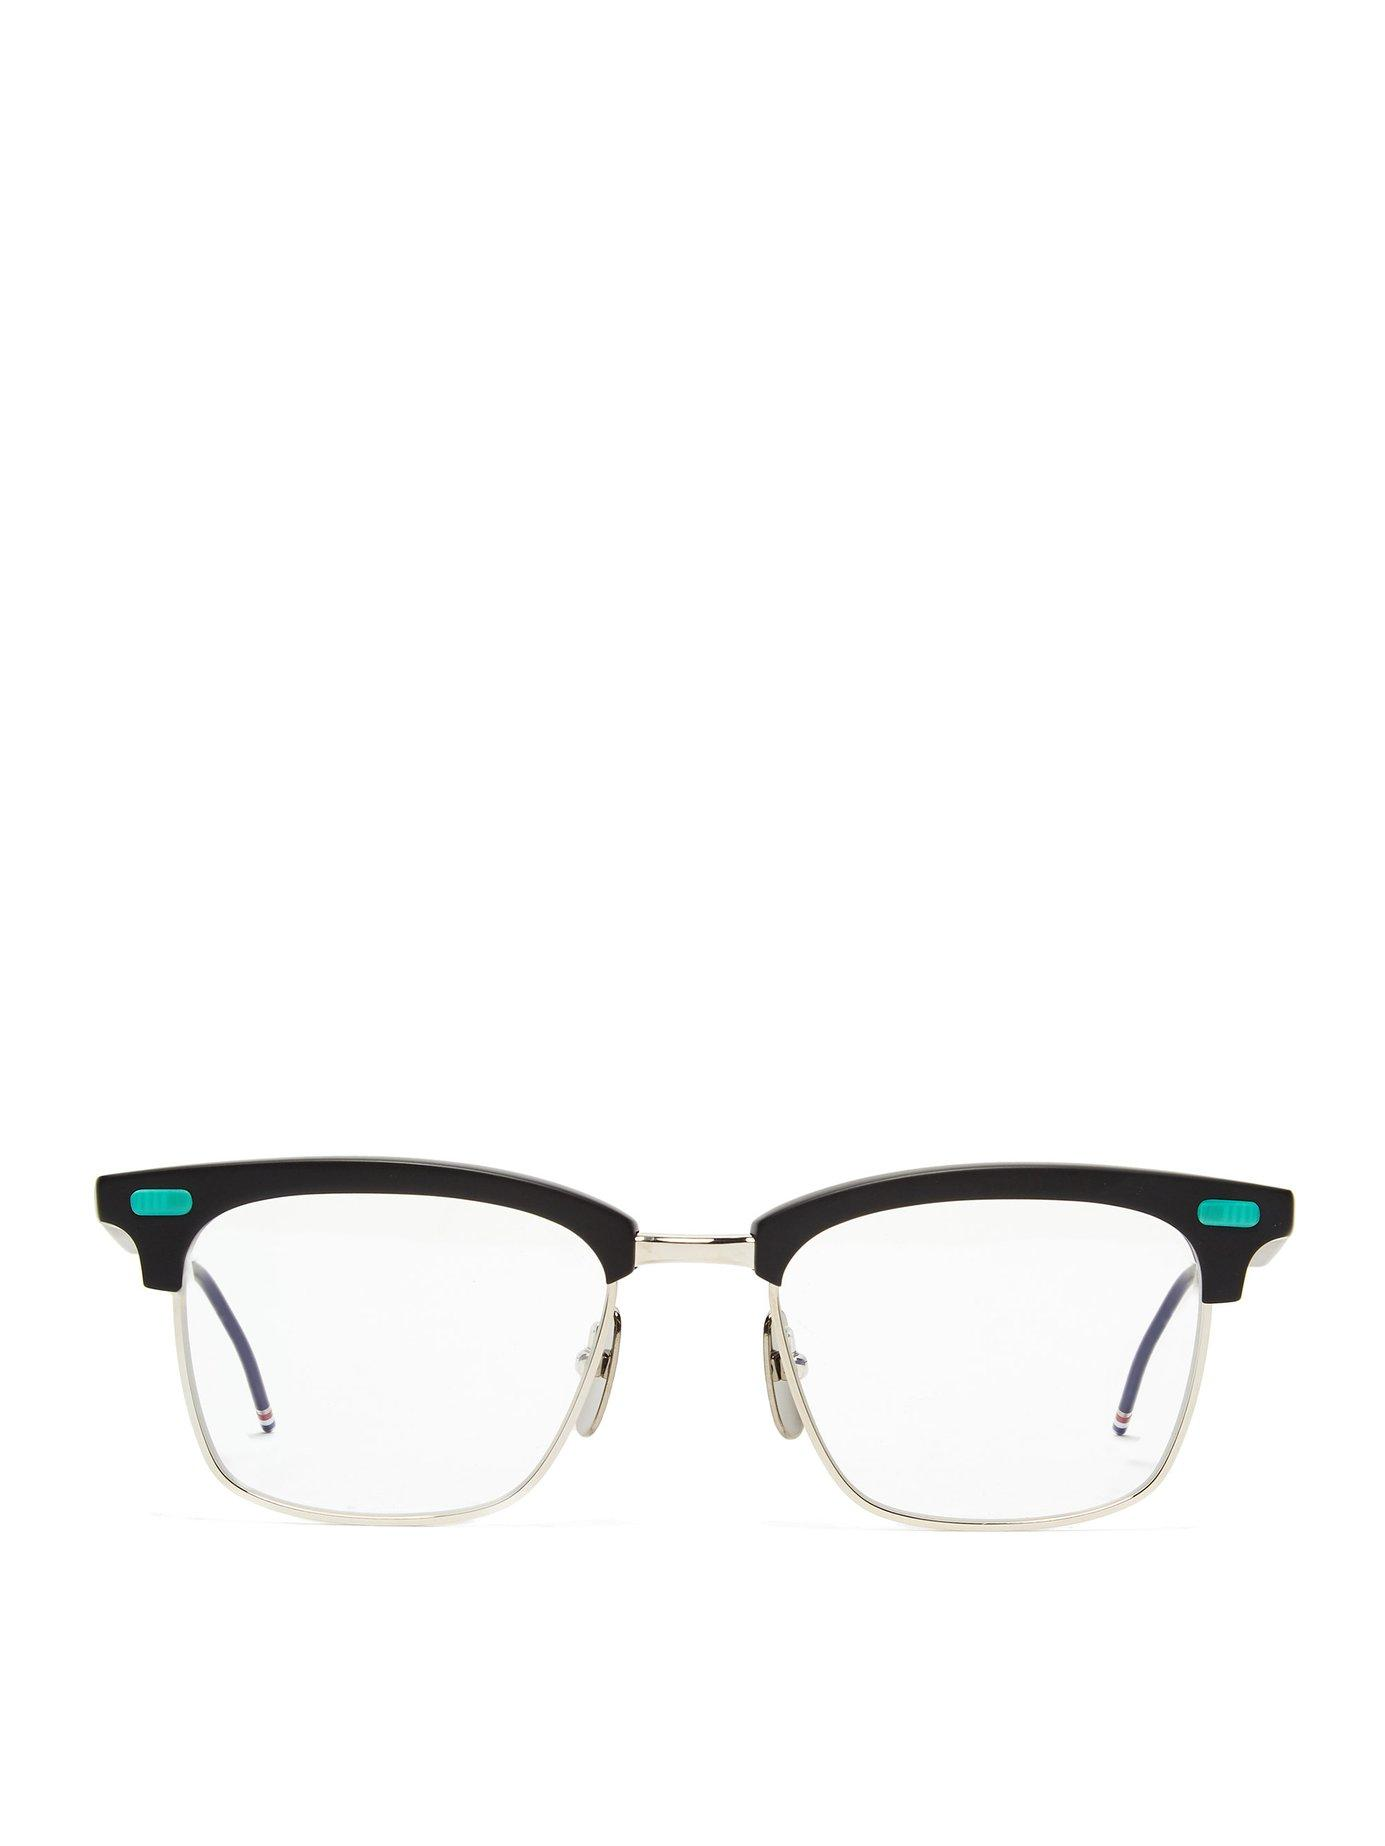 bde40ed13ee1 Lyst - Thom Browne D Frame Metal And Acetate Glasses in Black for Men